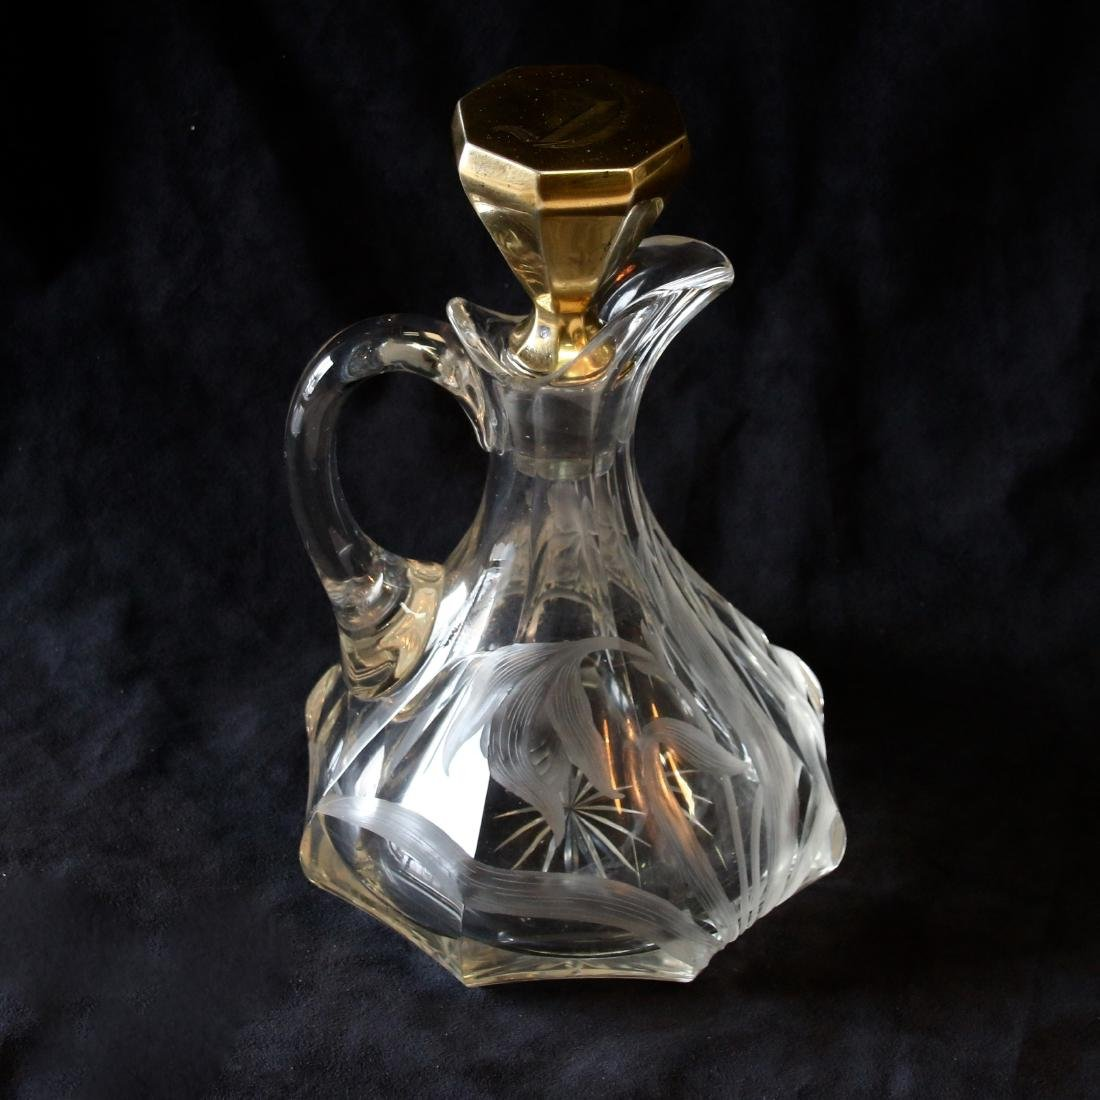 GRAVIC CUT DECANTER